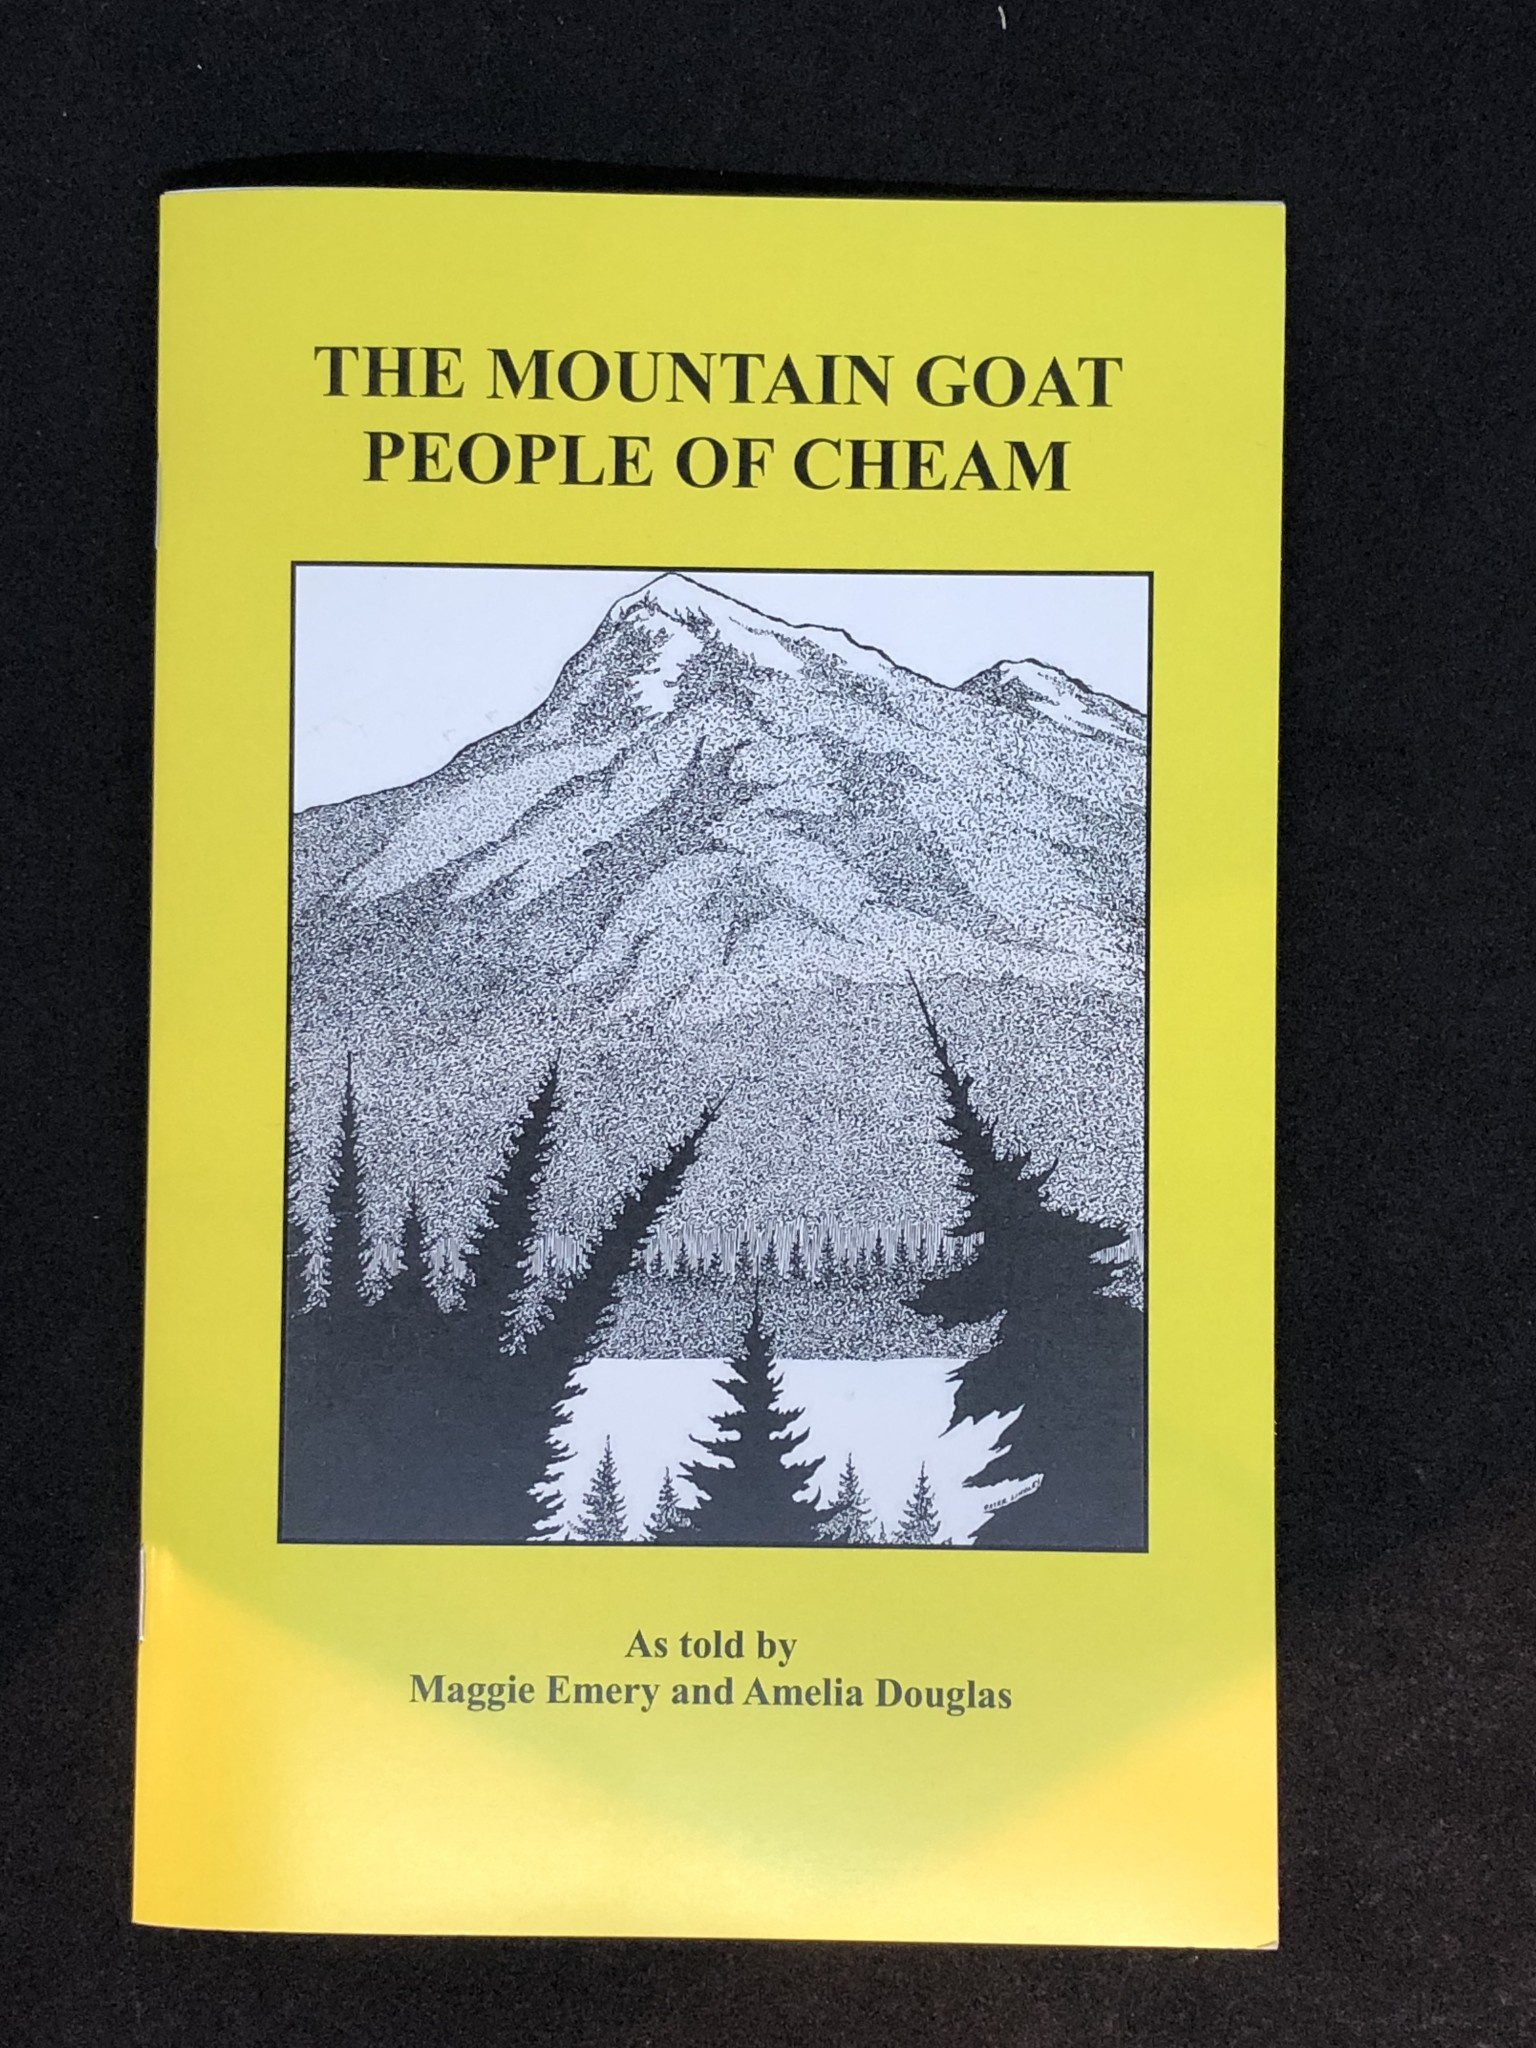 Book-The Moutain Goat People of Cheam-1